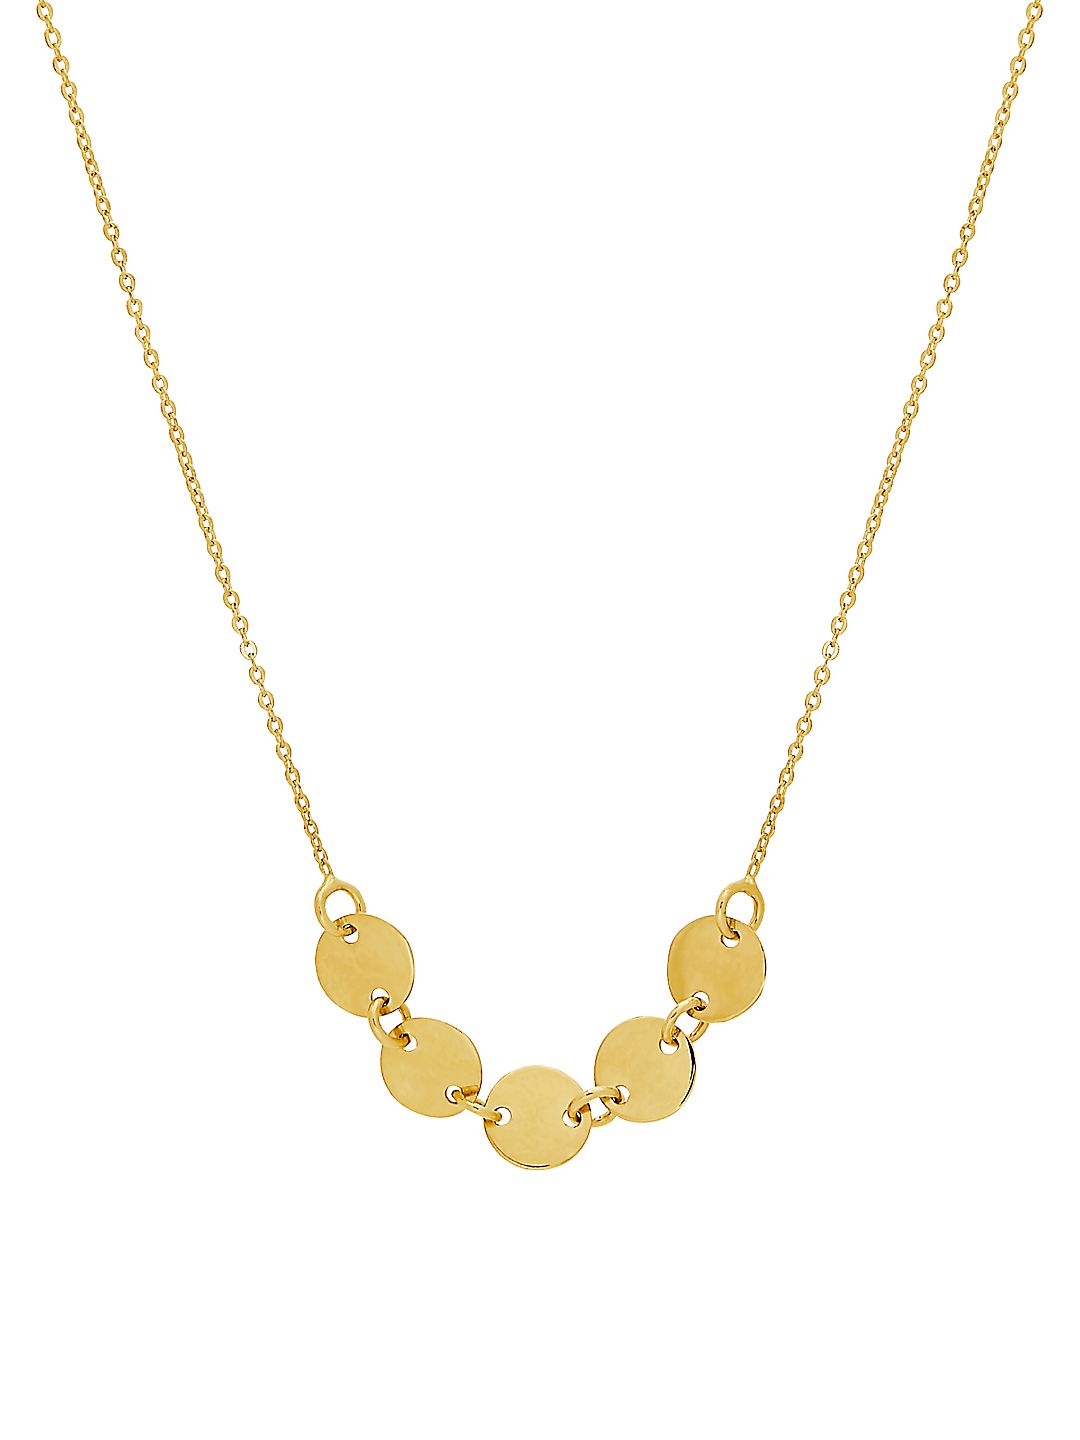 Disk 14K Yellow Gold Necklace